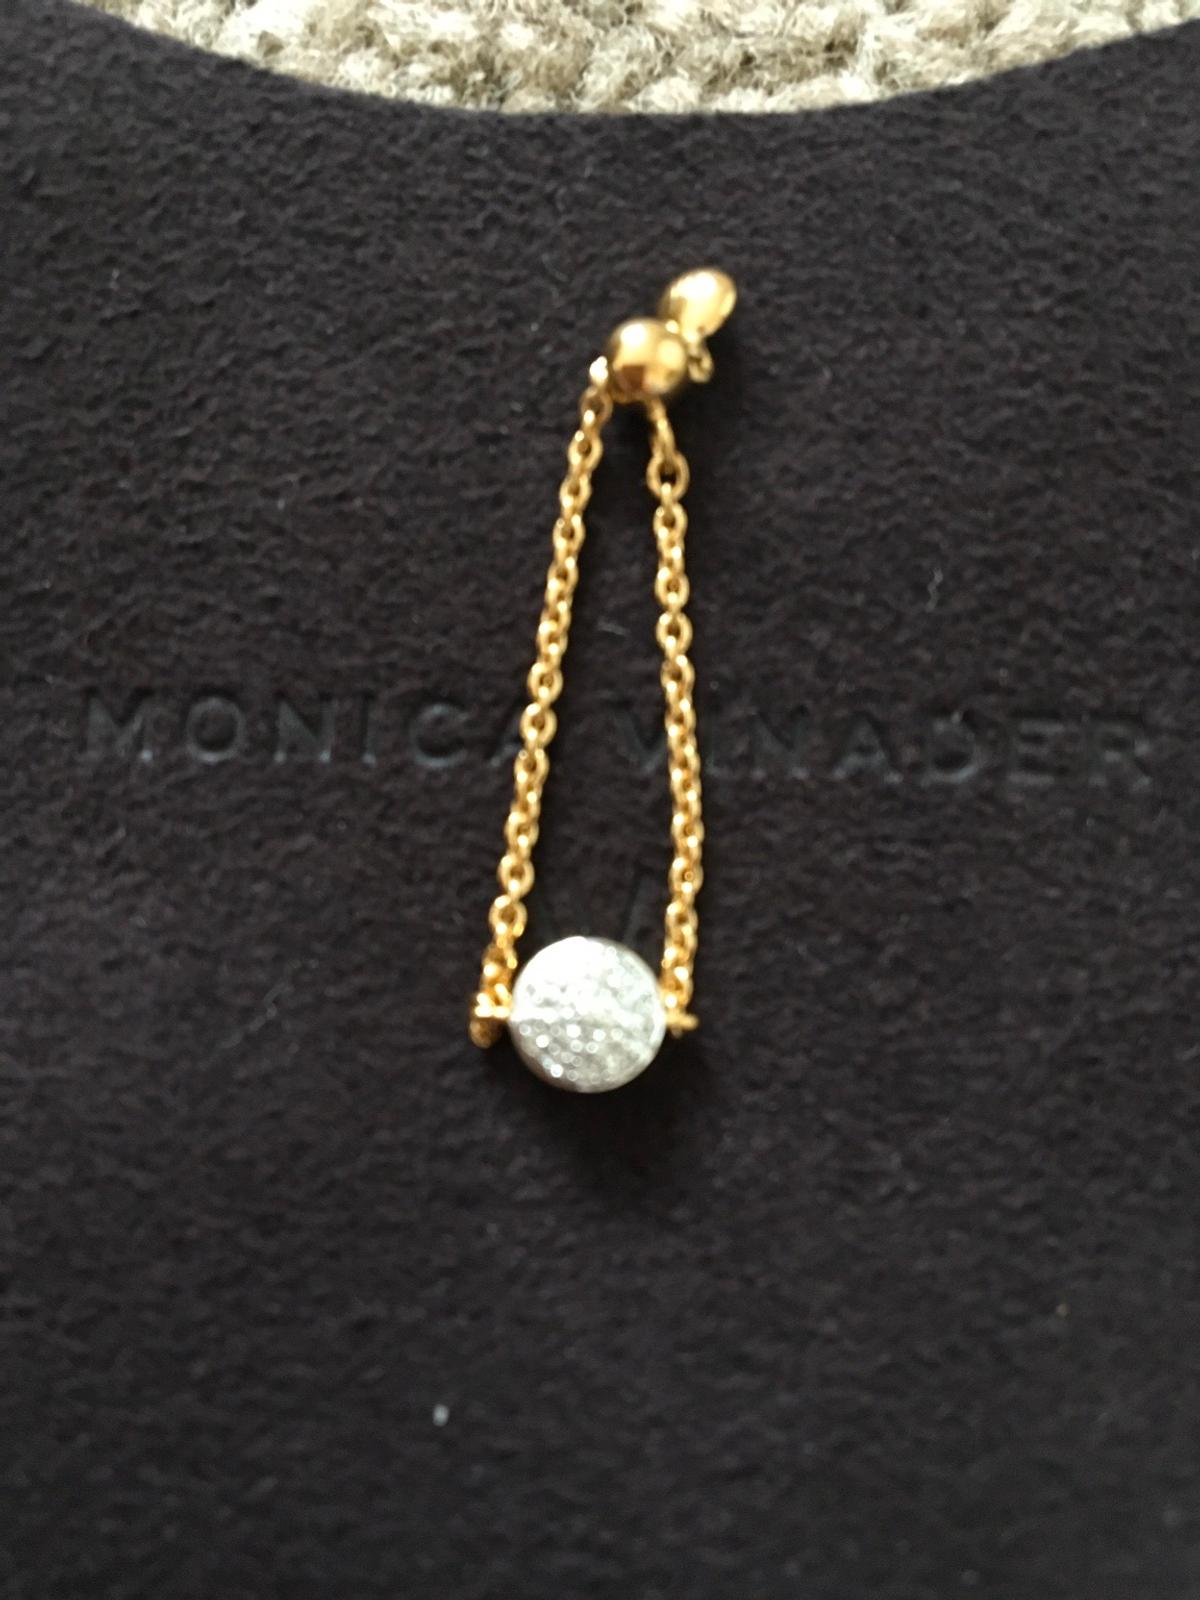 Fiji Mini Button Friendship Chain Diamond Ring in 18ct Gold Vermeil is an essential addition to your jewellery collection. Measuring 6 mm in width and 61.5 mm in depth with 19 set pavé diamonds totalling 0.05 carats, this beautiful ring is adjustable up to size T through a small, sliding ball. Stack it with our other friendship chain rings or style it with chain bracelets for a new take on everyday fine jewellery.  PLEASE NO PAYPAL DUE TO FRAUDSTERS  CASH ON COLLECTION OR BANK TRANSFER ONLY.